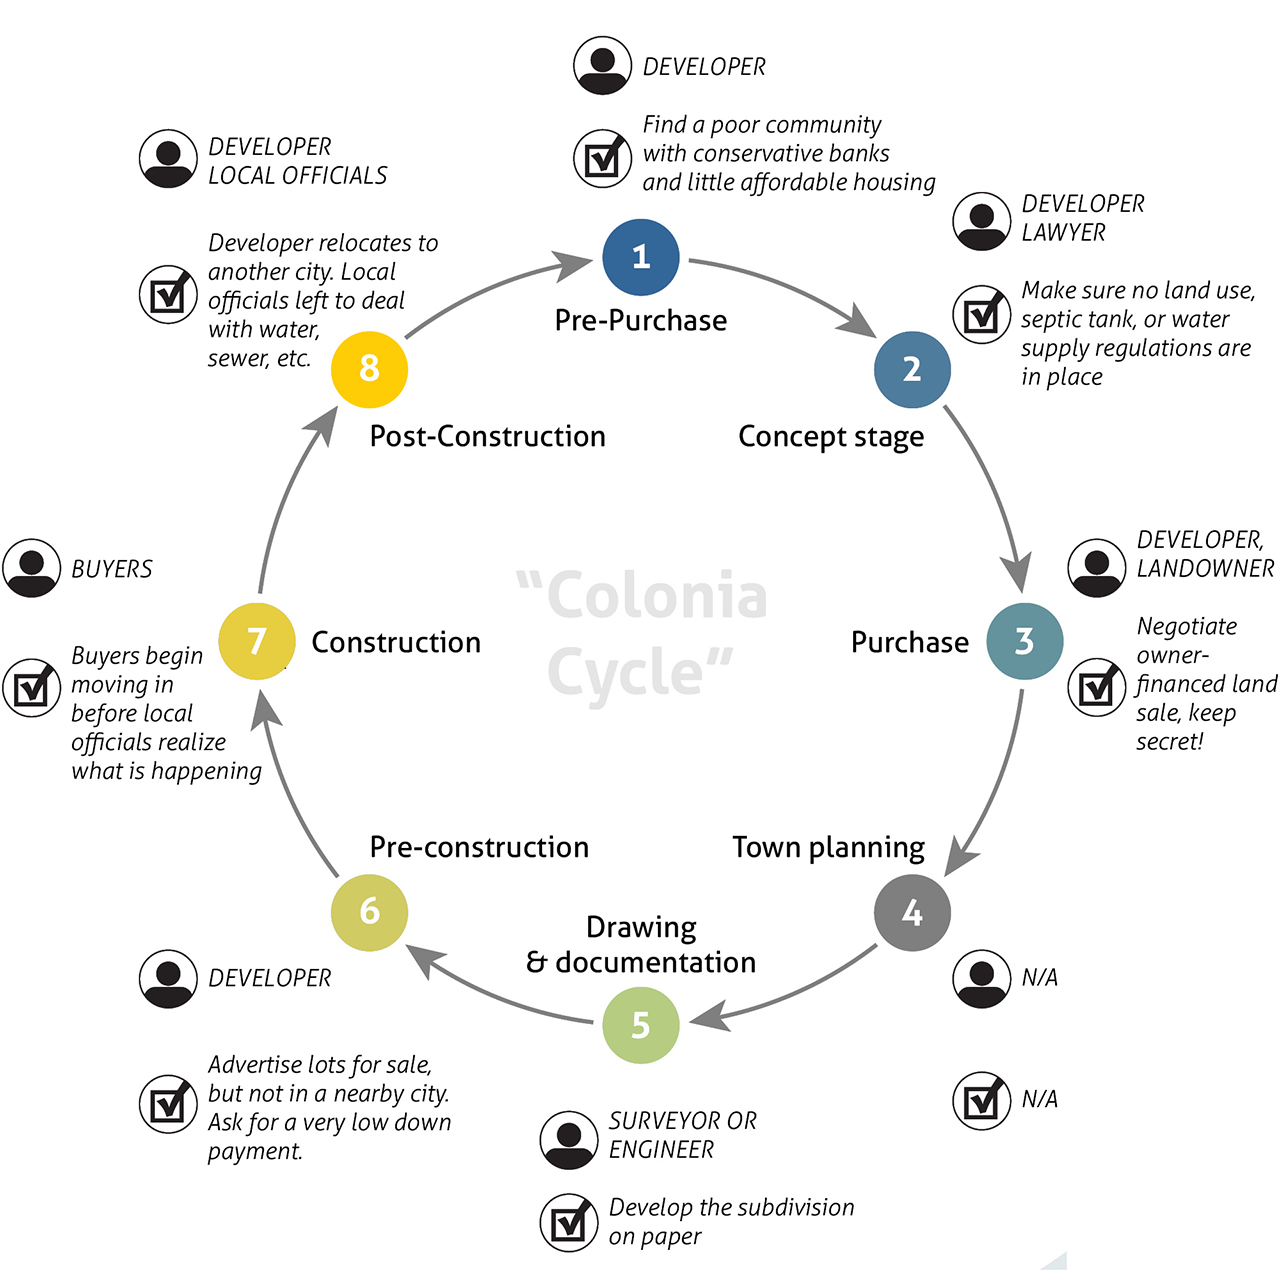 baudoin-thesis-coloniacycle